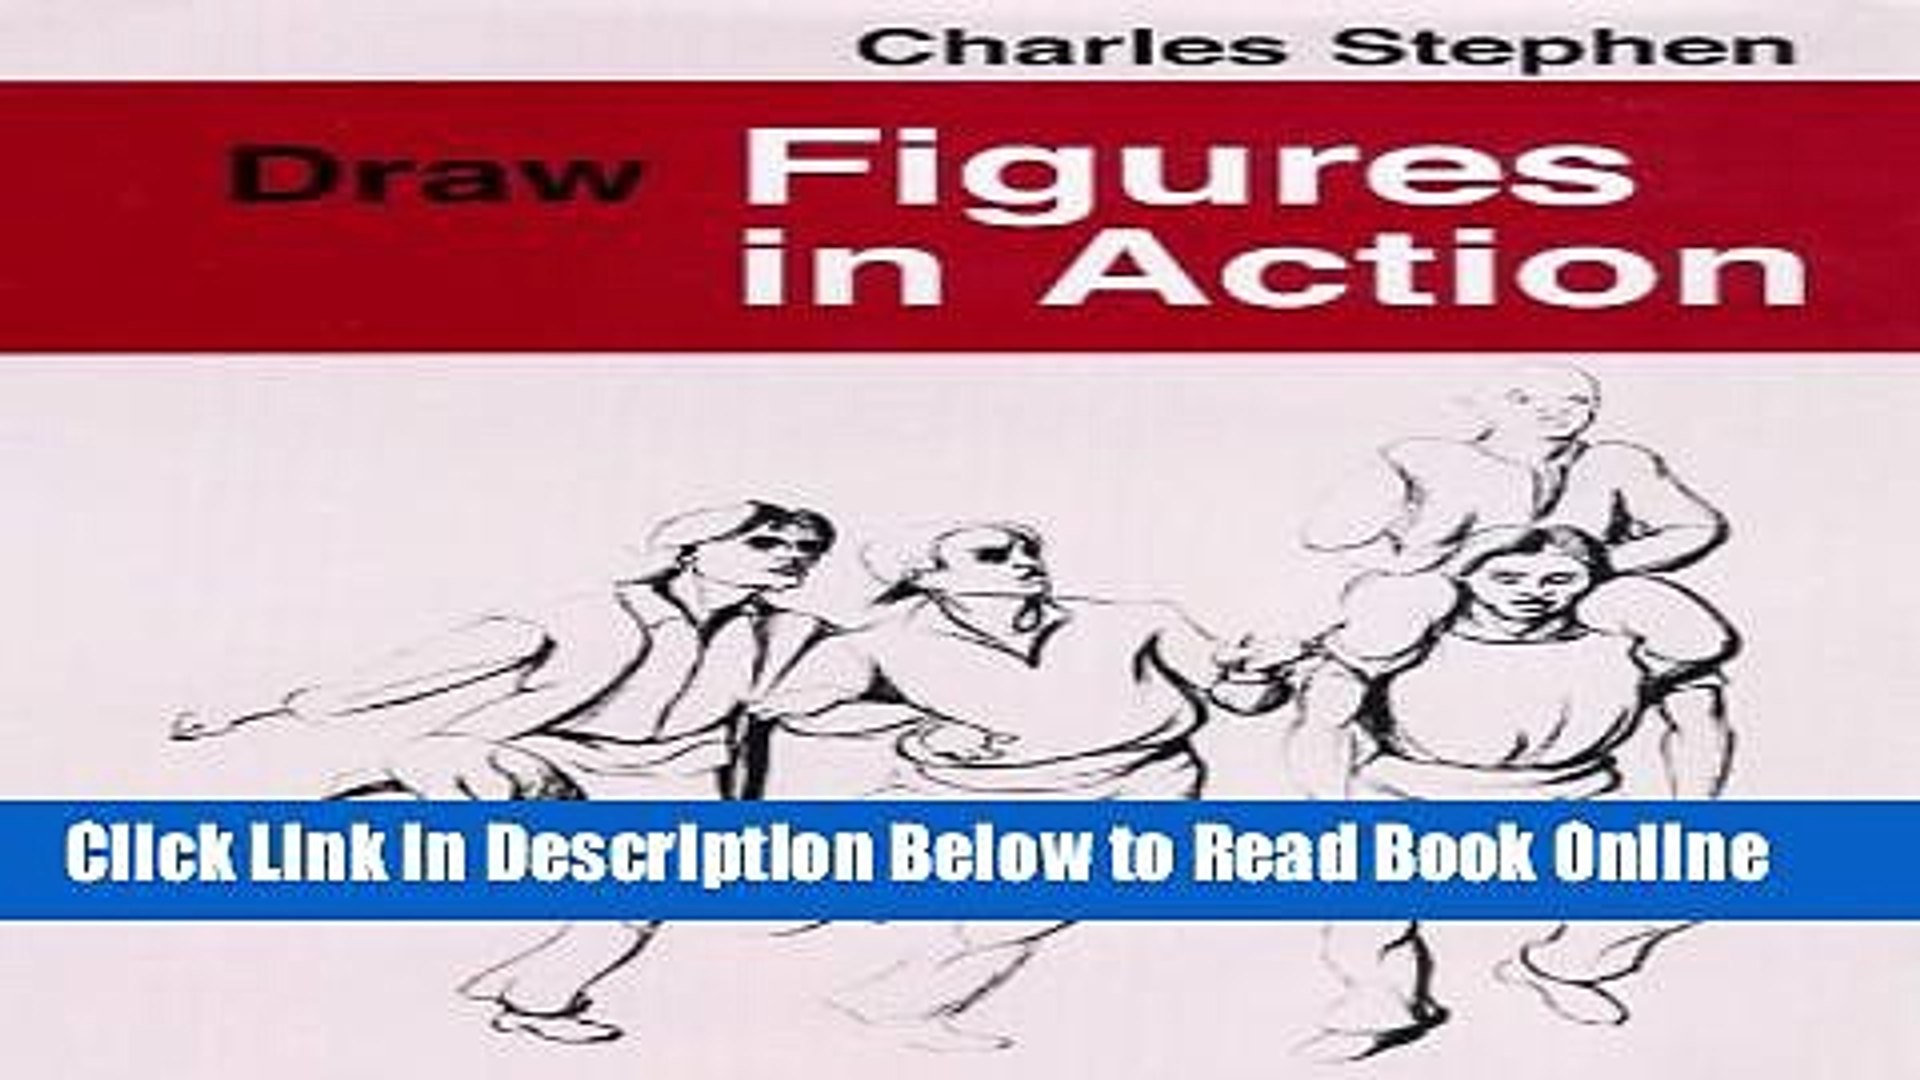 Download Draw Figures in Action (Draw Books)  Ebook Online